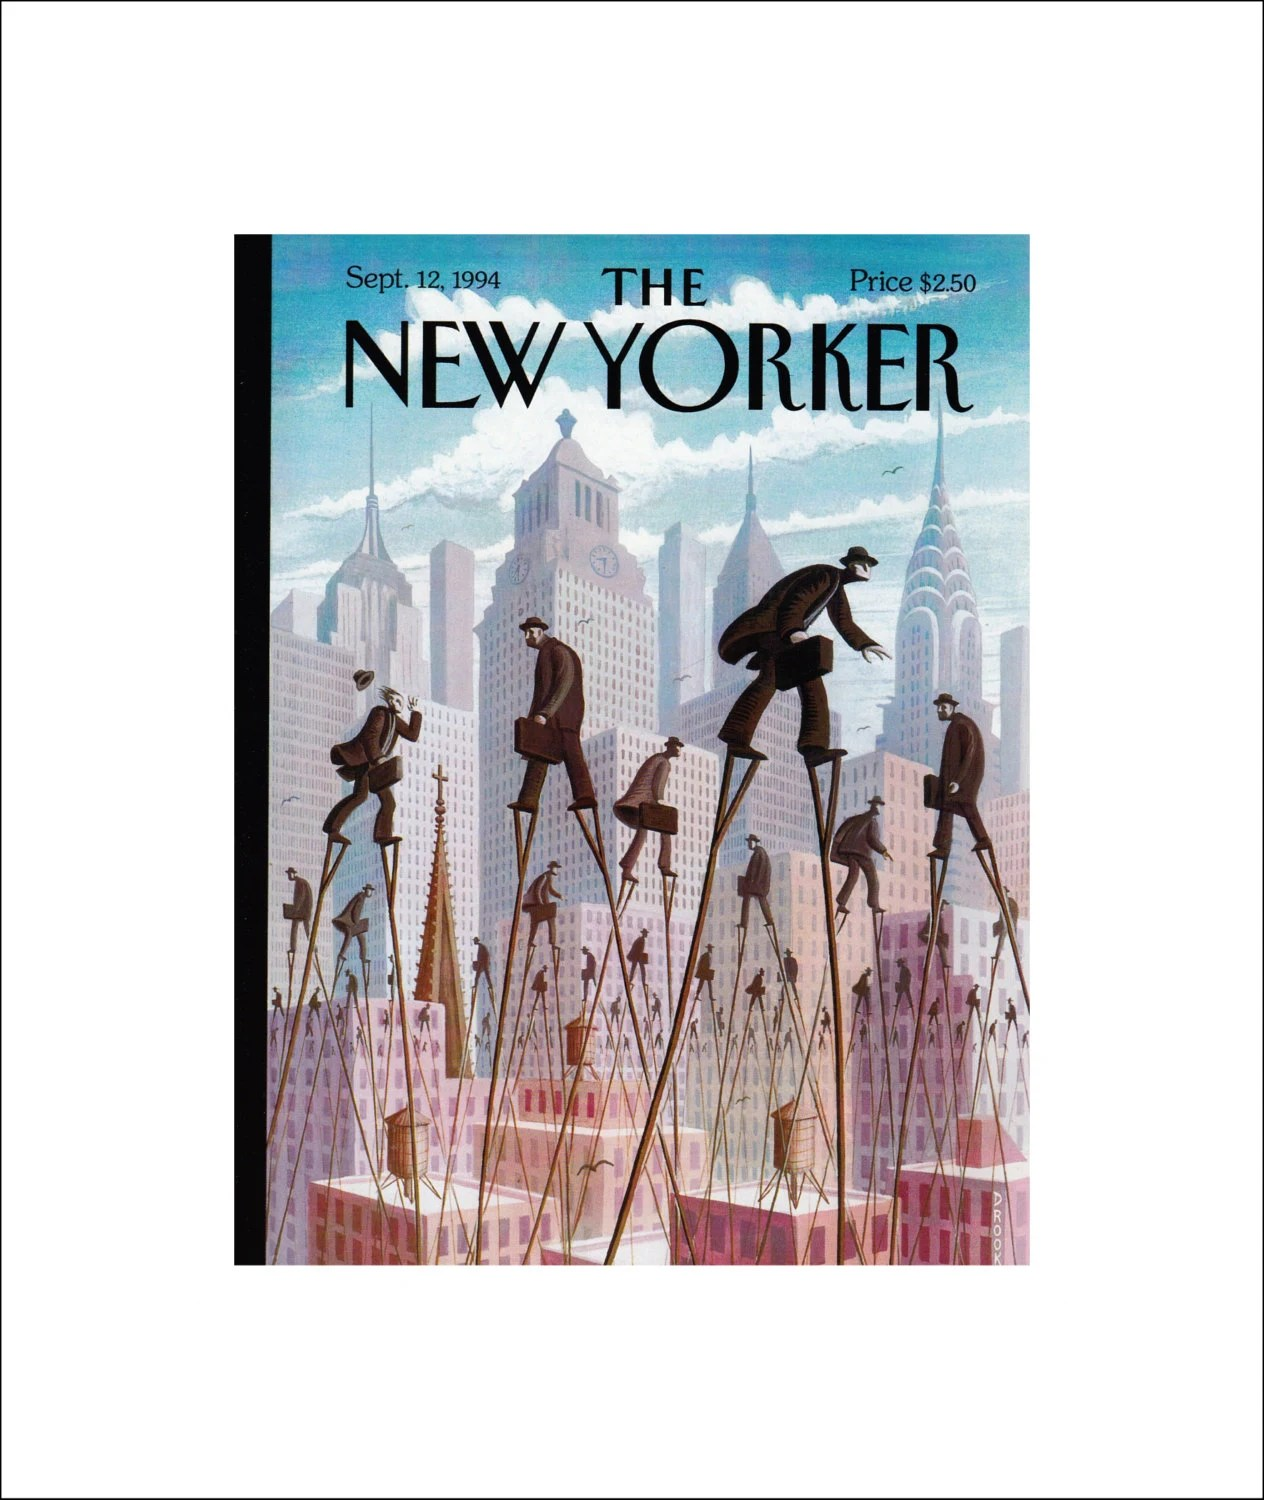 Art Of Eric Drooker Vintage The New Yorker Magazine Cover Poster Print Art 1994